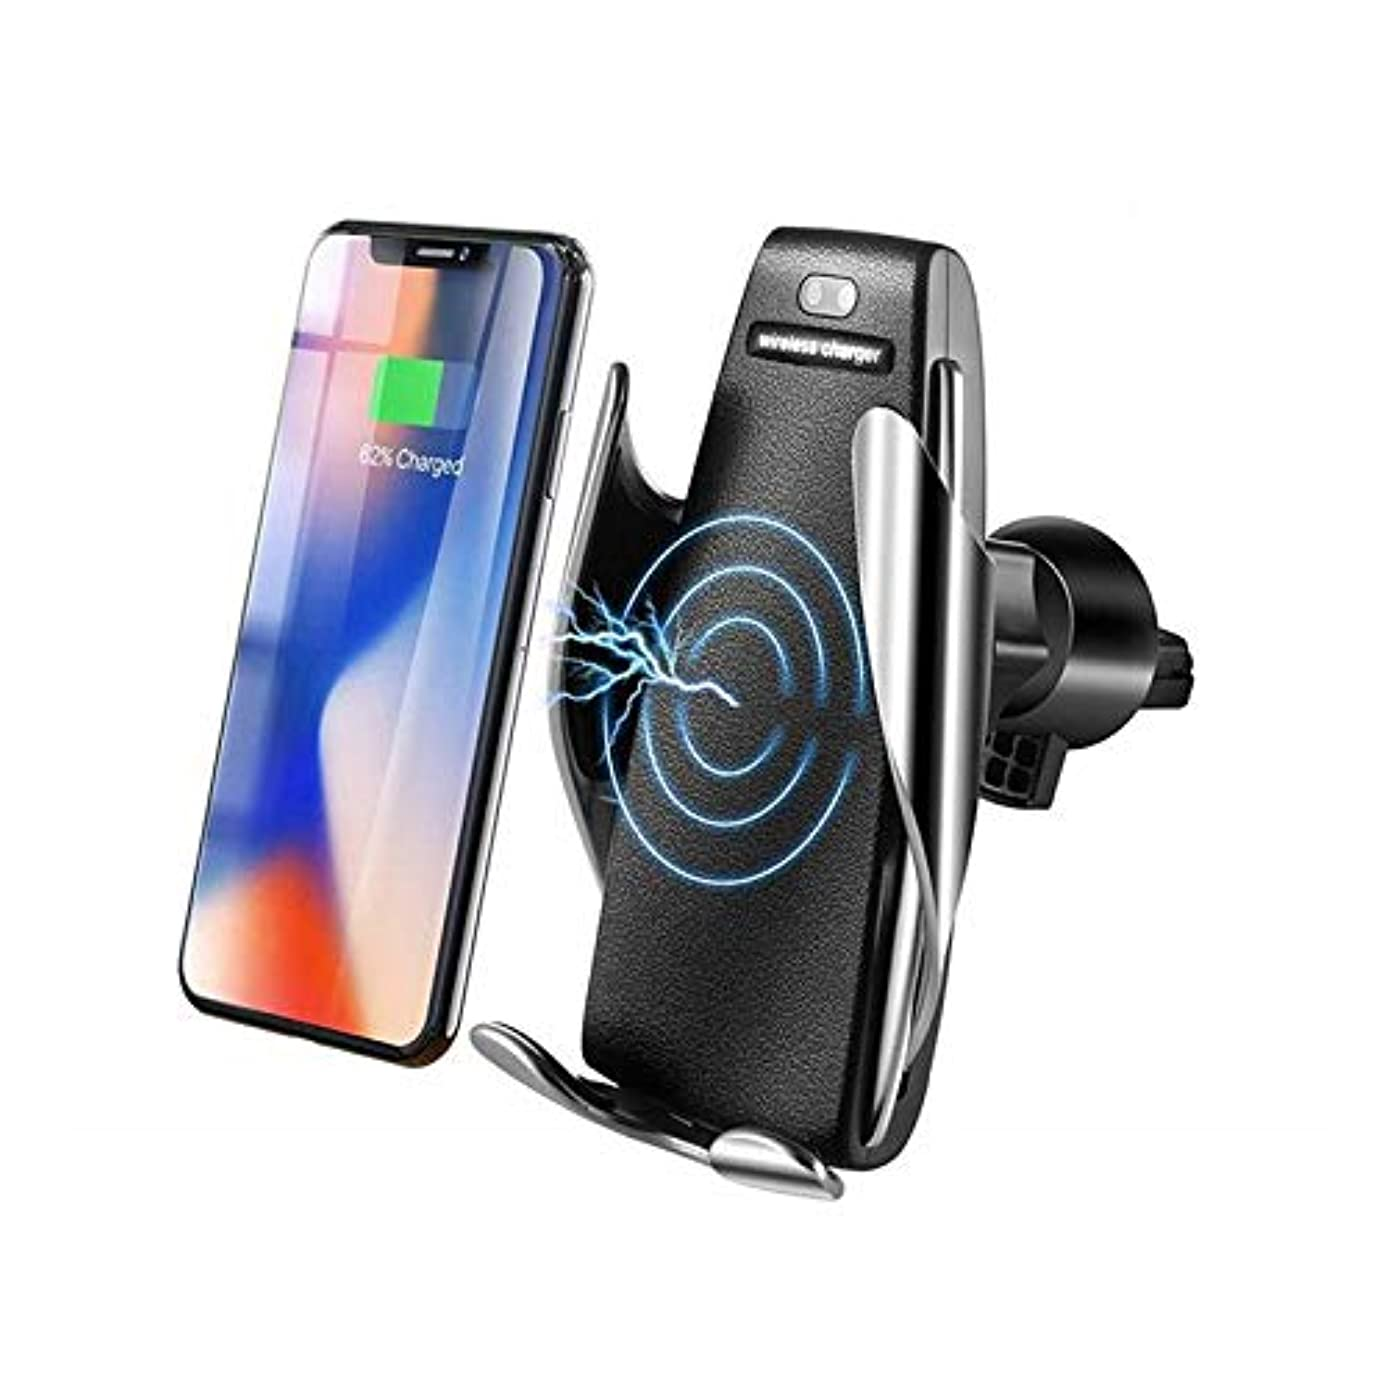 Qi Automatic Clamping Infrared Sensor Quick 3.0 Fast Car Wireless Charger Holder for iPhone X 8 Xs Max XR Samsung S8 S9